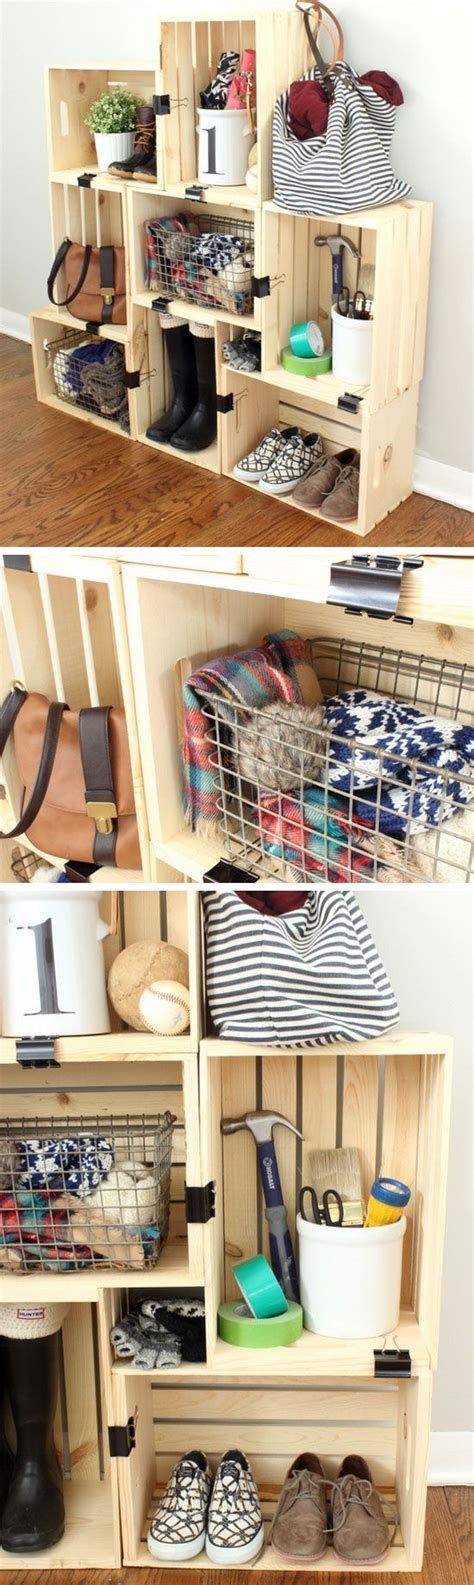 20 genius storage hacks for the kitchen diy cozy home front windows small apartment organization and